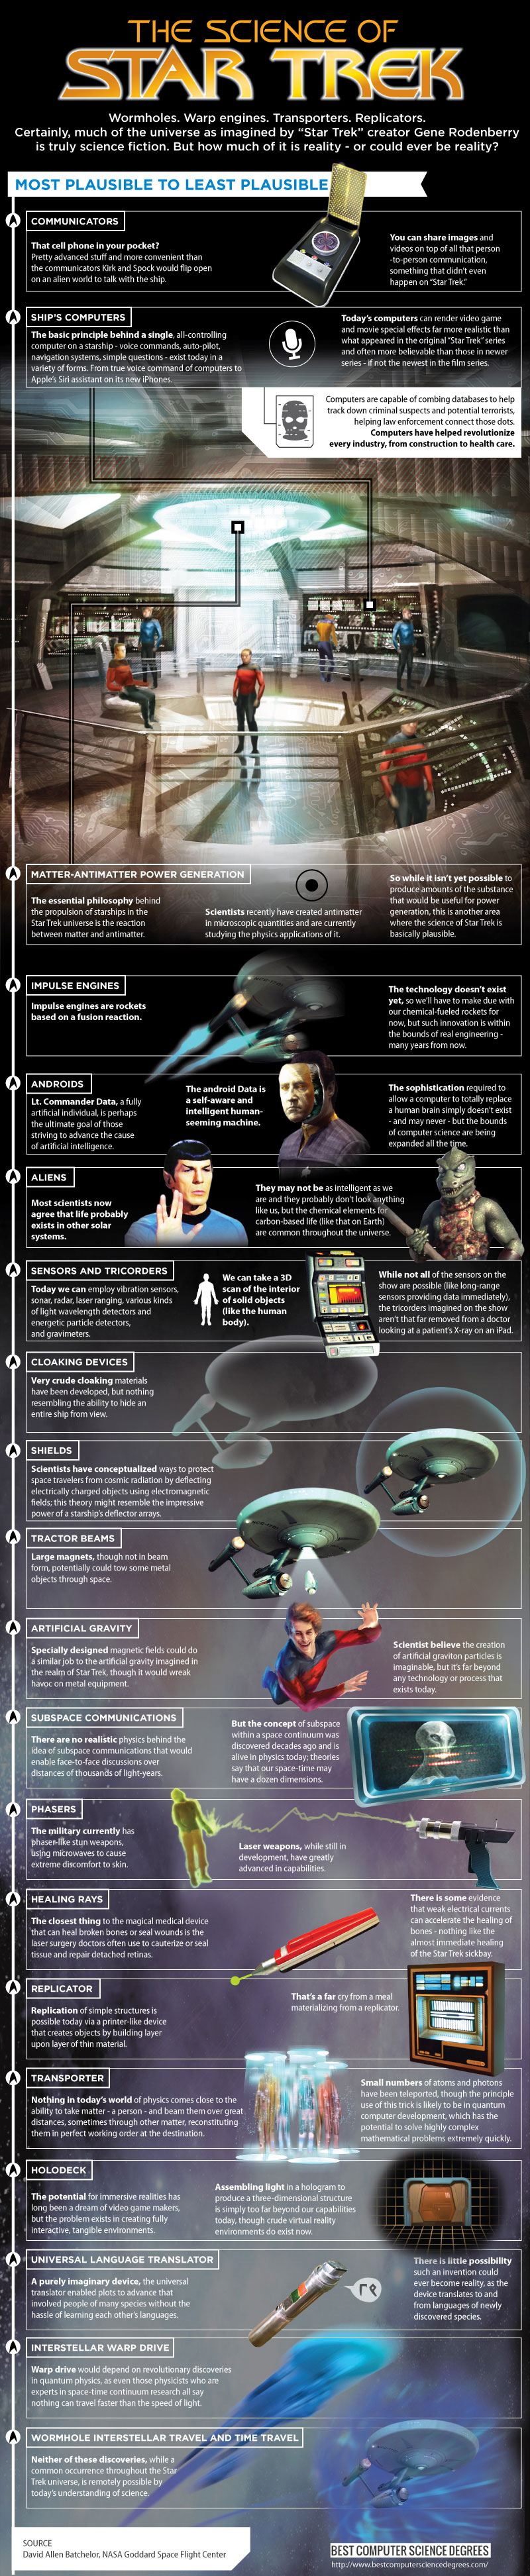 Science-Of-Star-Trek-Infographic